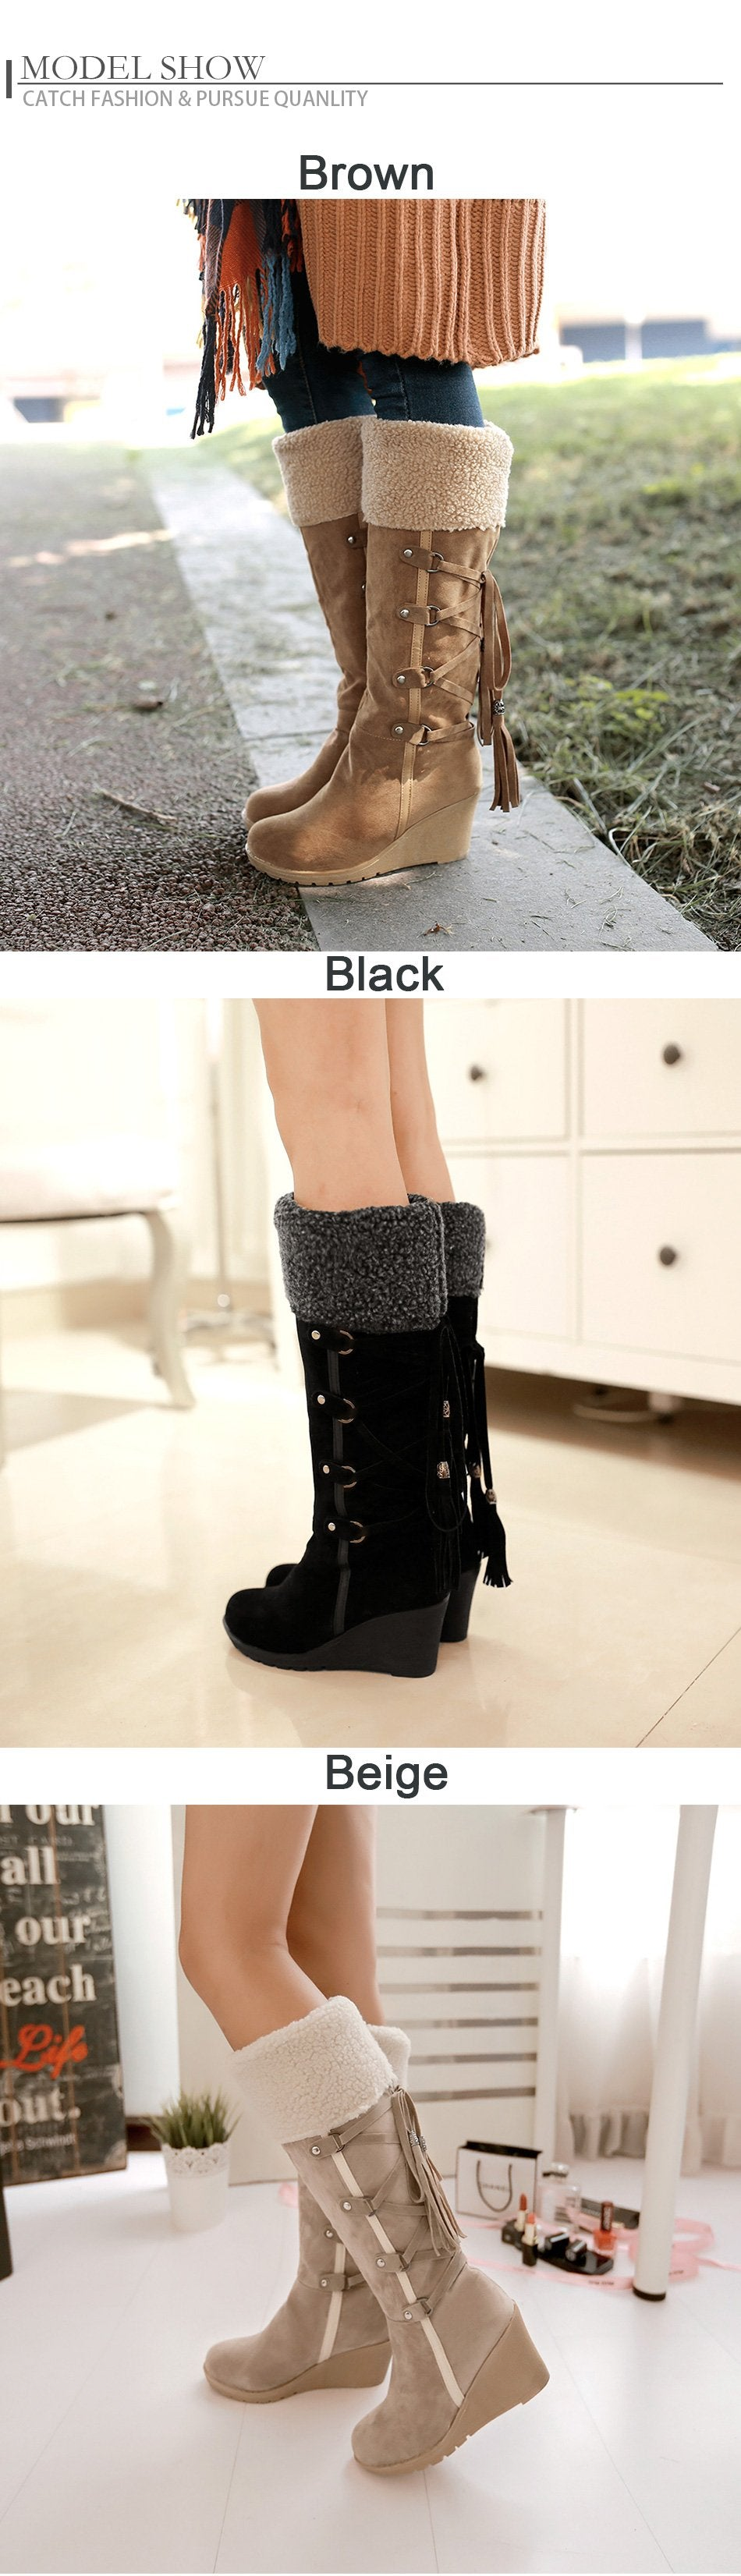 f2e1ba02e33 Gdgydh Fashion Scrub Plush Snow Boots Women Wedges Knee-high Slip ...